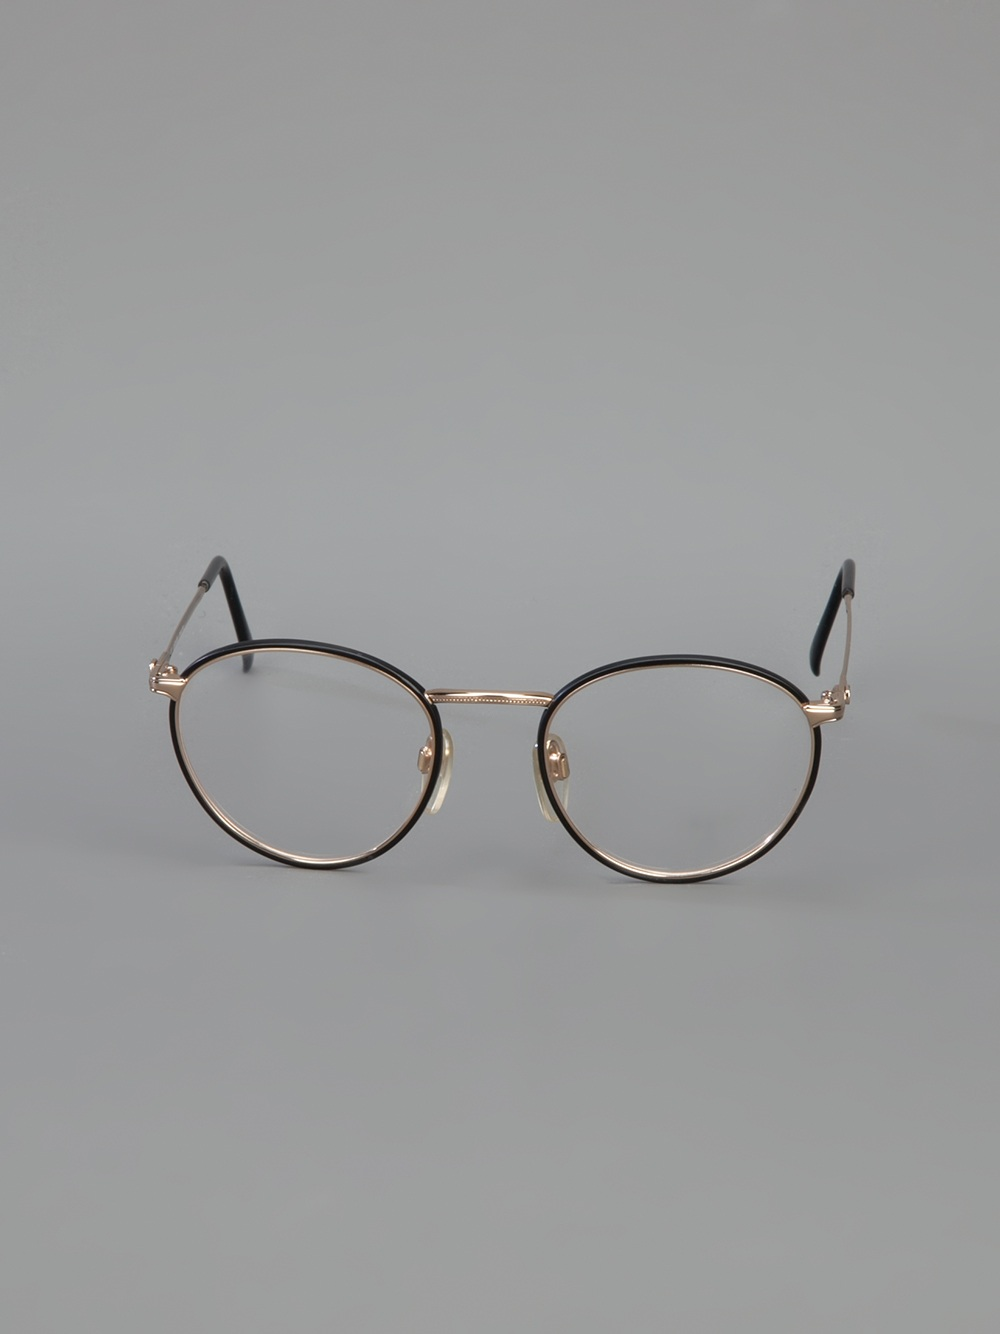 Lyst - Valentino Round Frame Optical Glasses in Black